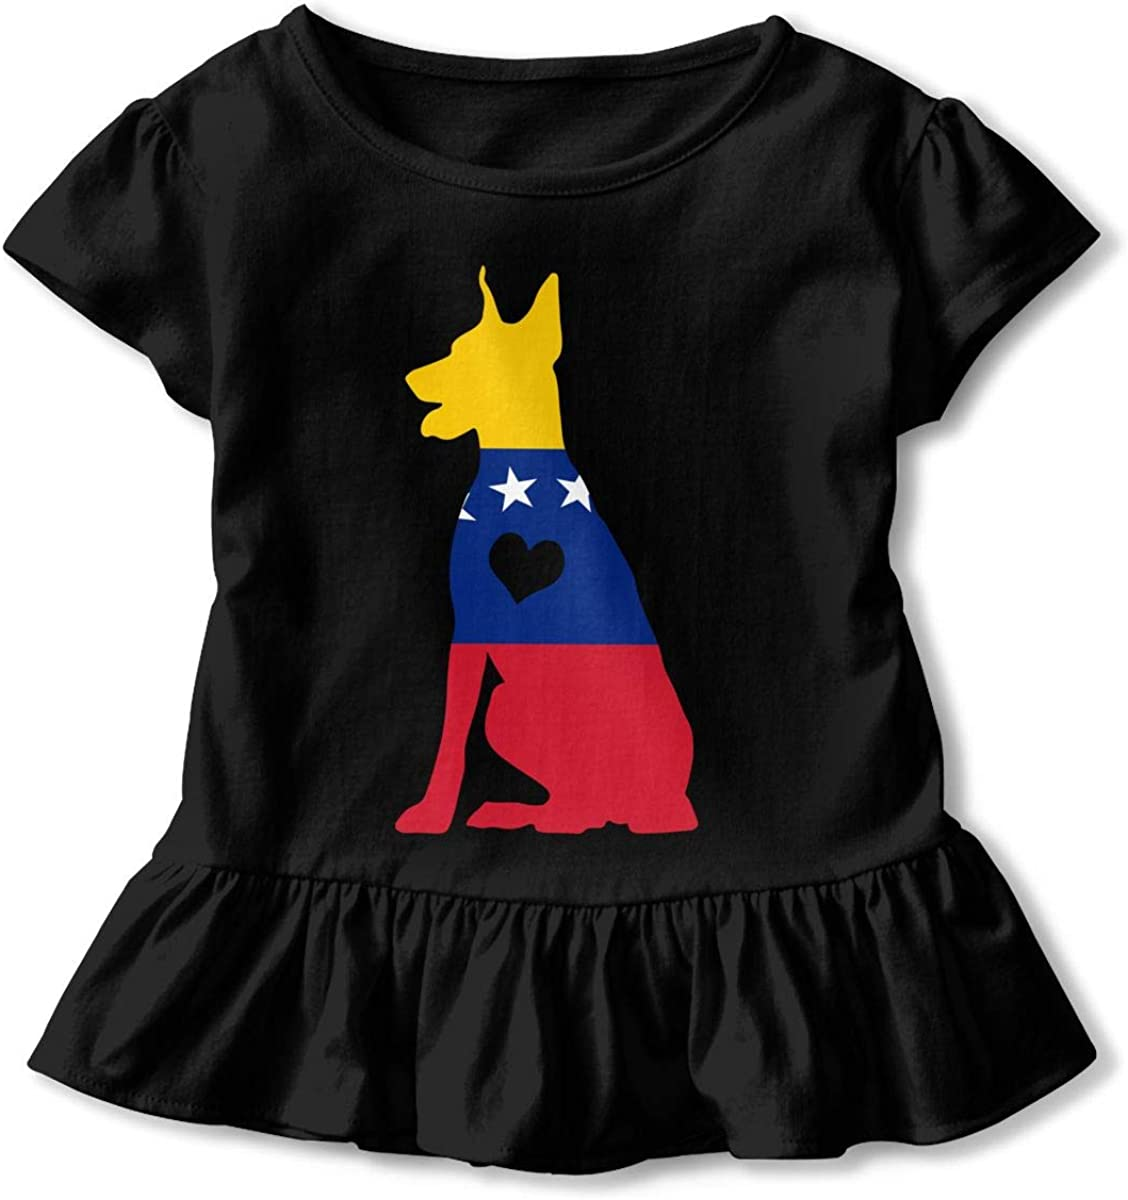 26NSHIRT Venezuela Flag Adore Dobermans Dog Girls Short Sleeve Peplum T-Shirt